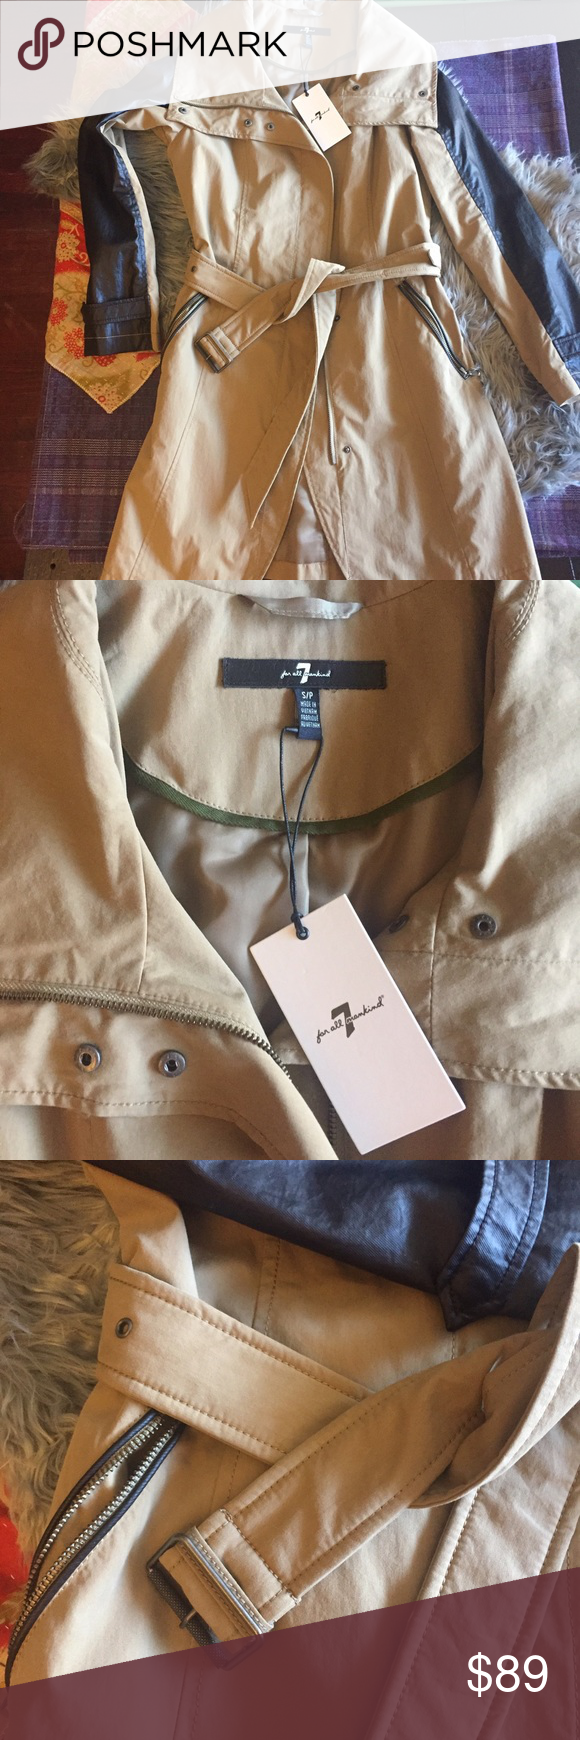 Brand new 7 FOR ALL MANKIND trench! Brand new with tags! Very trendy trench coat with contrasting paneling. 7 For All Mankind Jackets & Coats Trench Coats